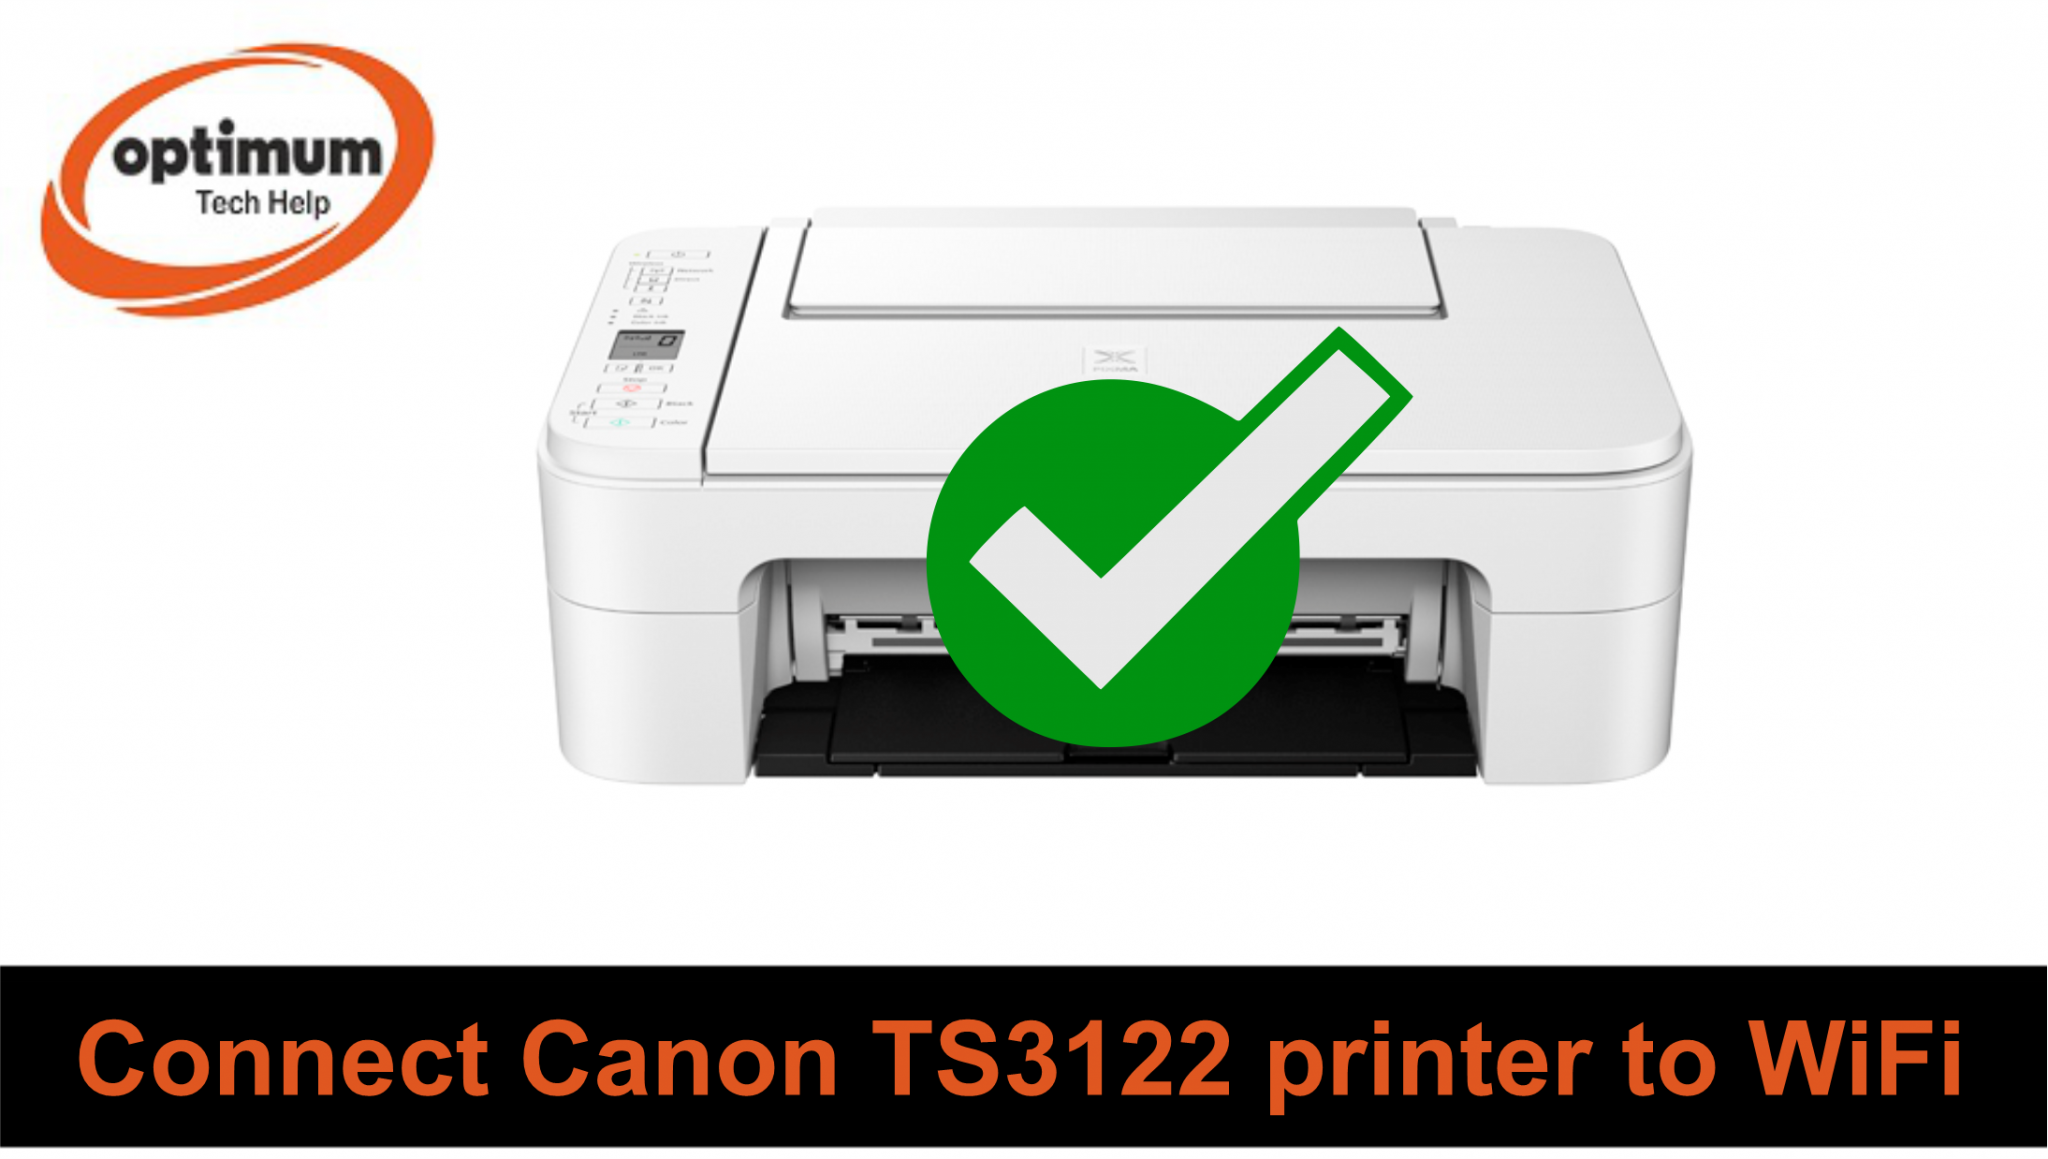 canon ts3122 connect to internet Archives - Optimum Tech Help